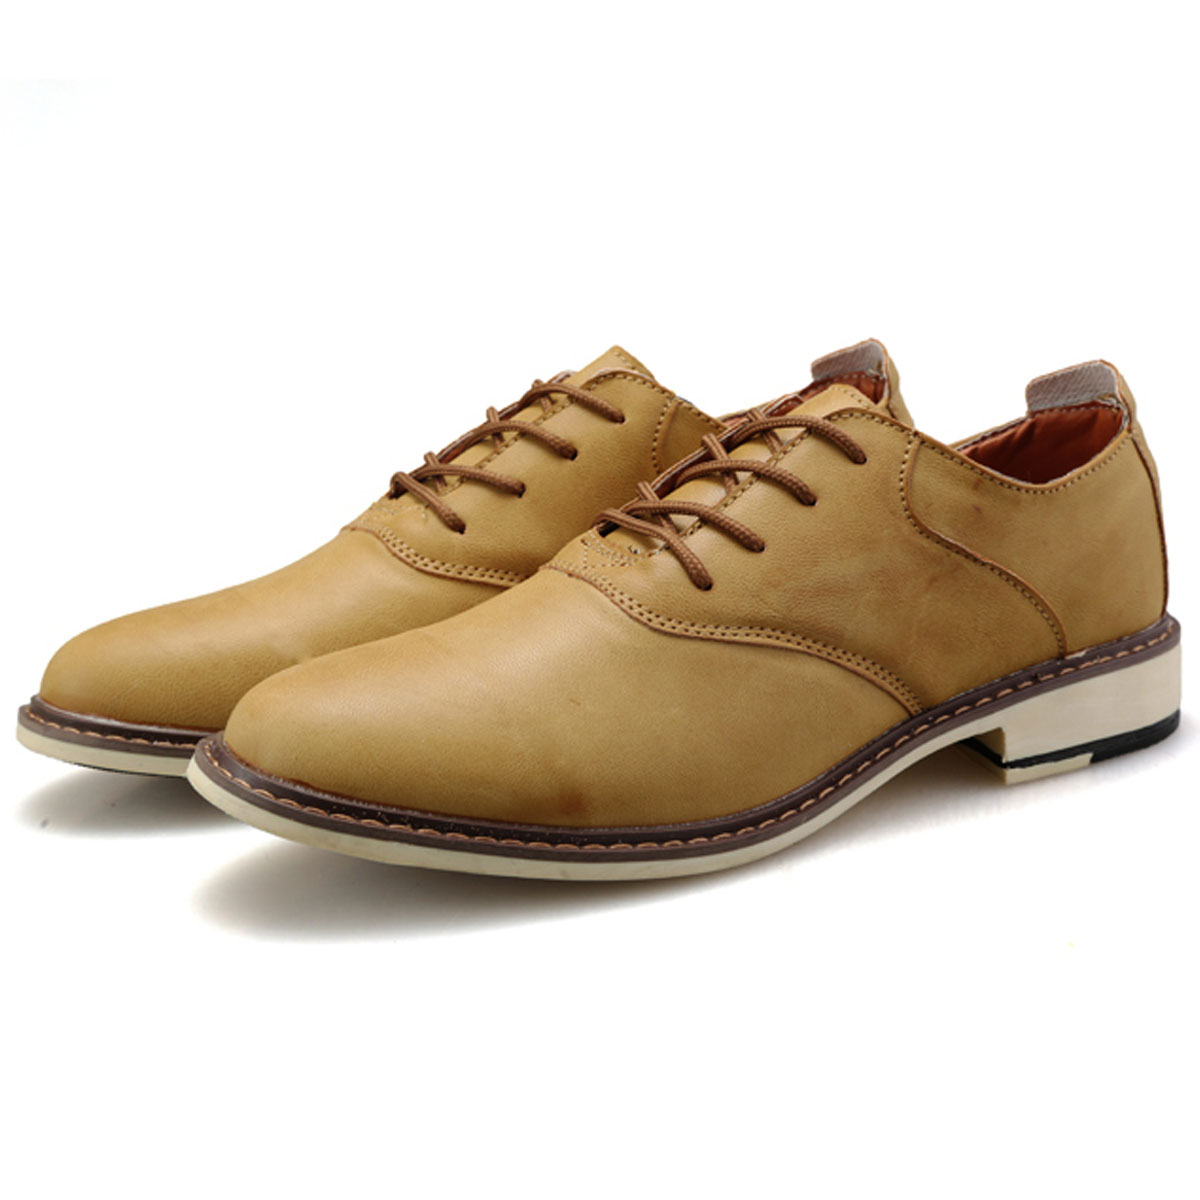 mens shoes reviews about this pair style shoes are